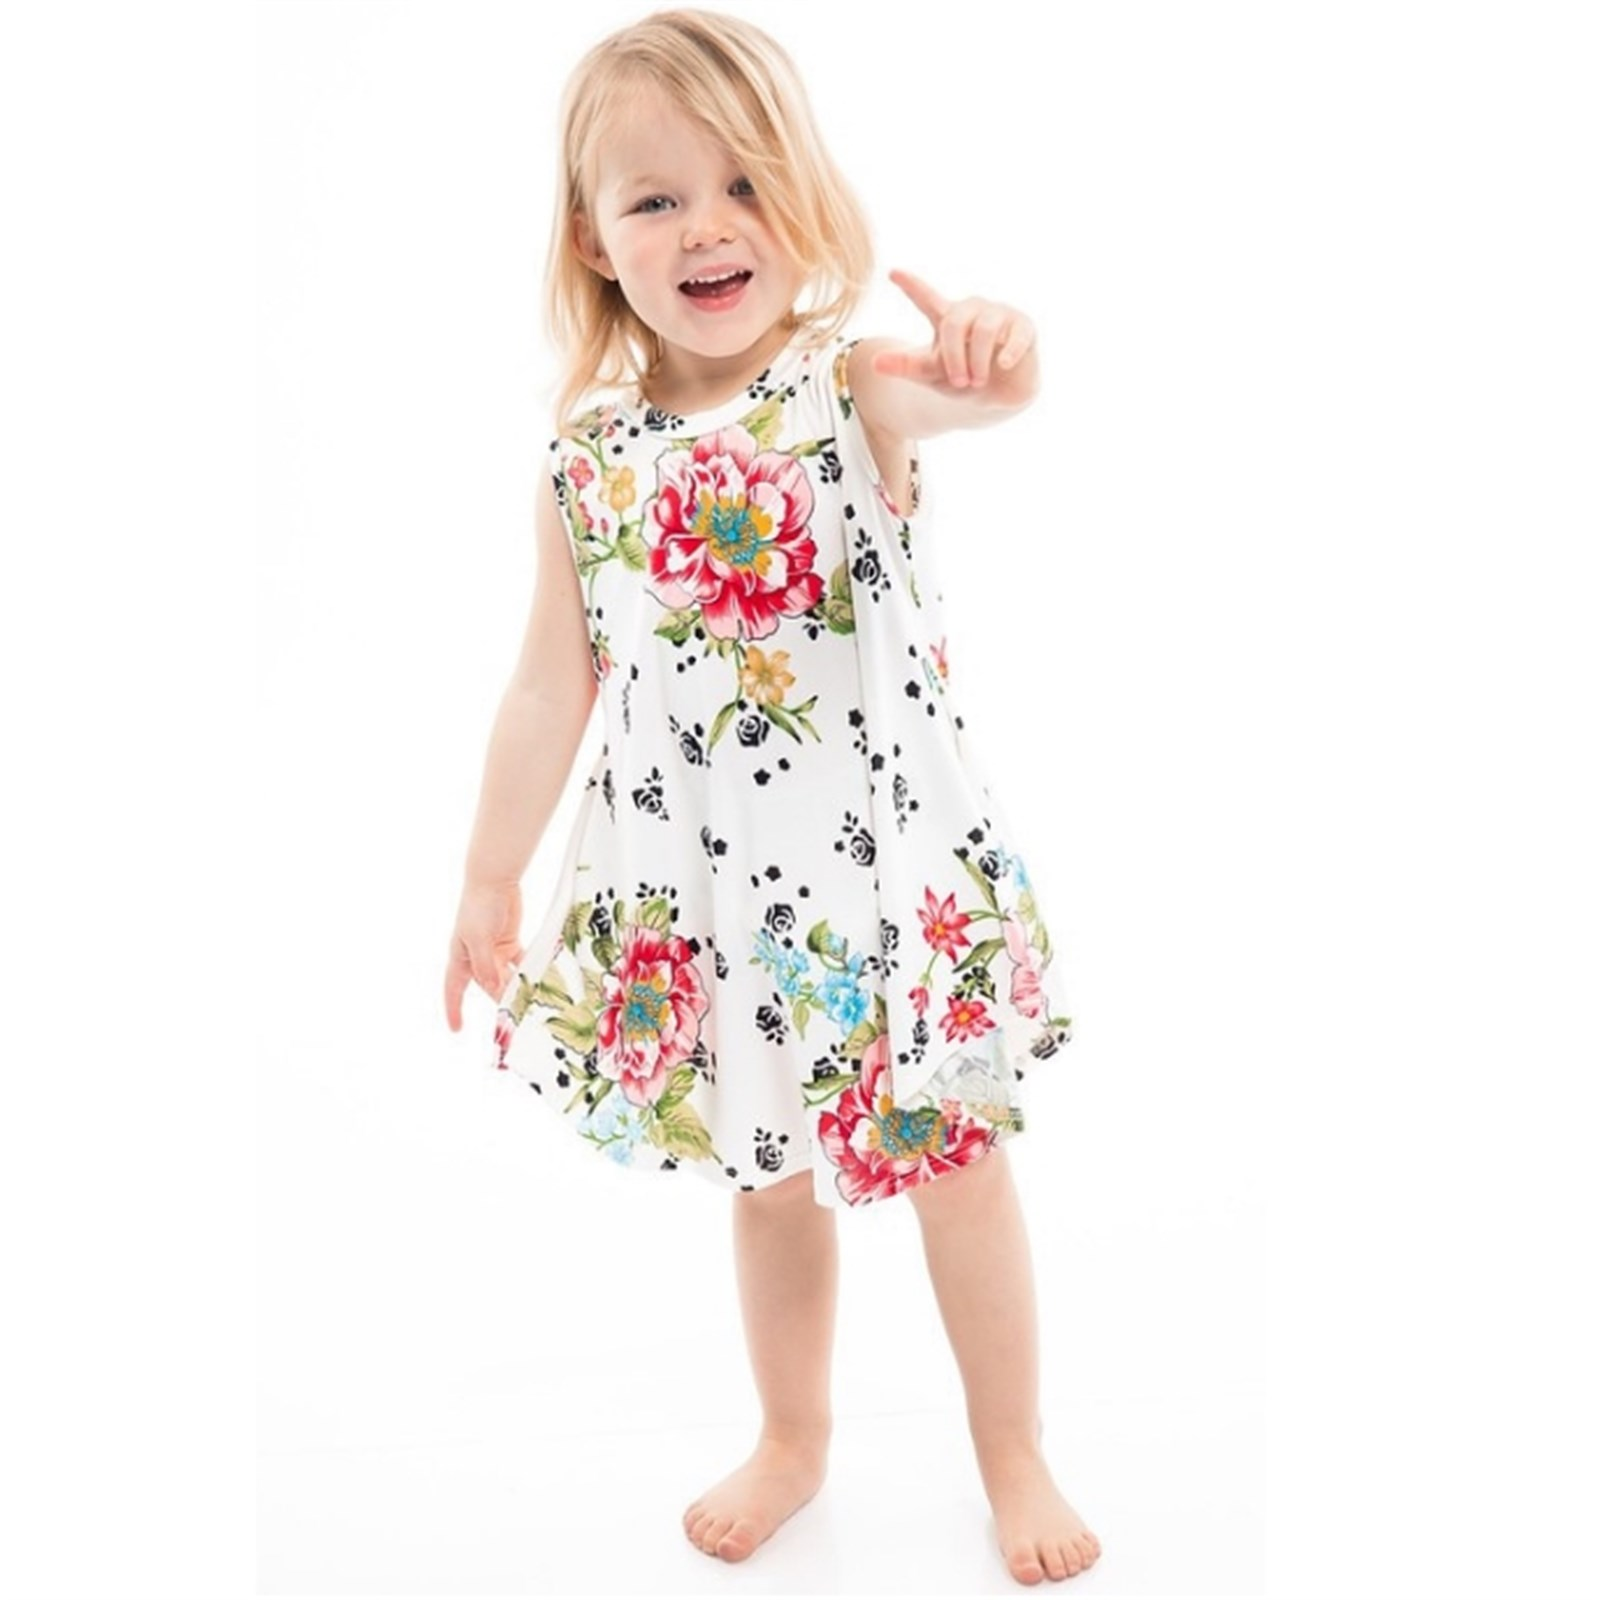 Toddler's Summer Dresses Only $8.99 w/ Free Shipping